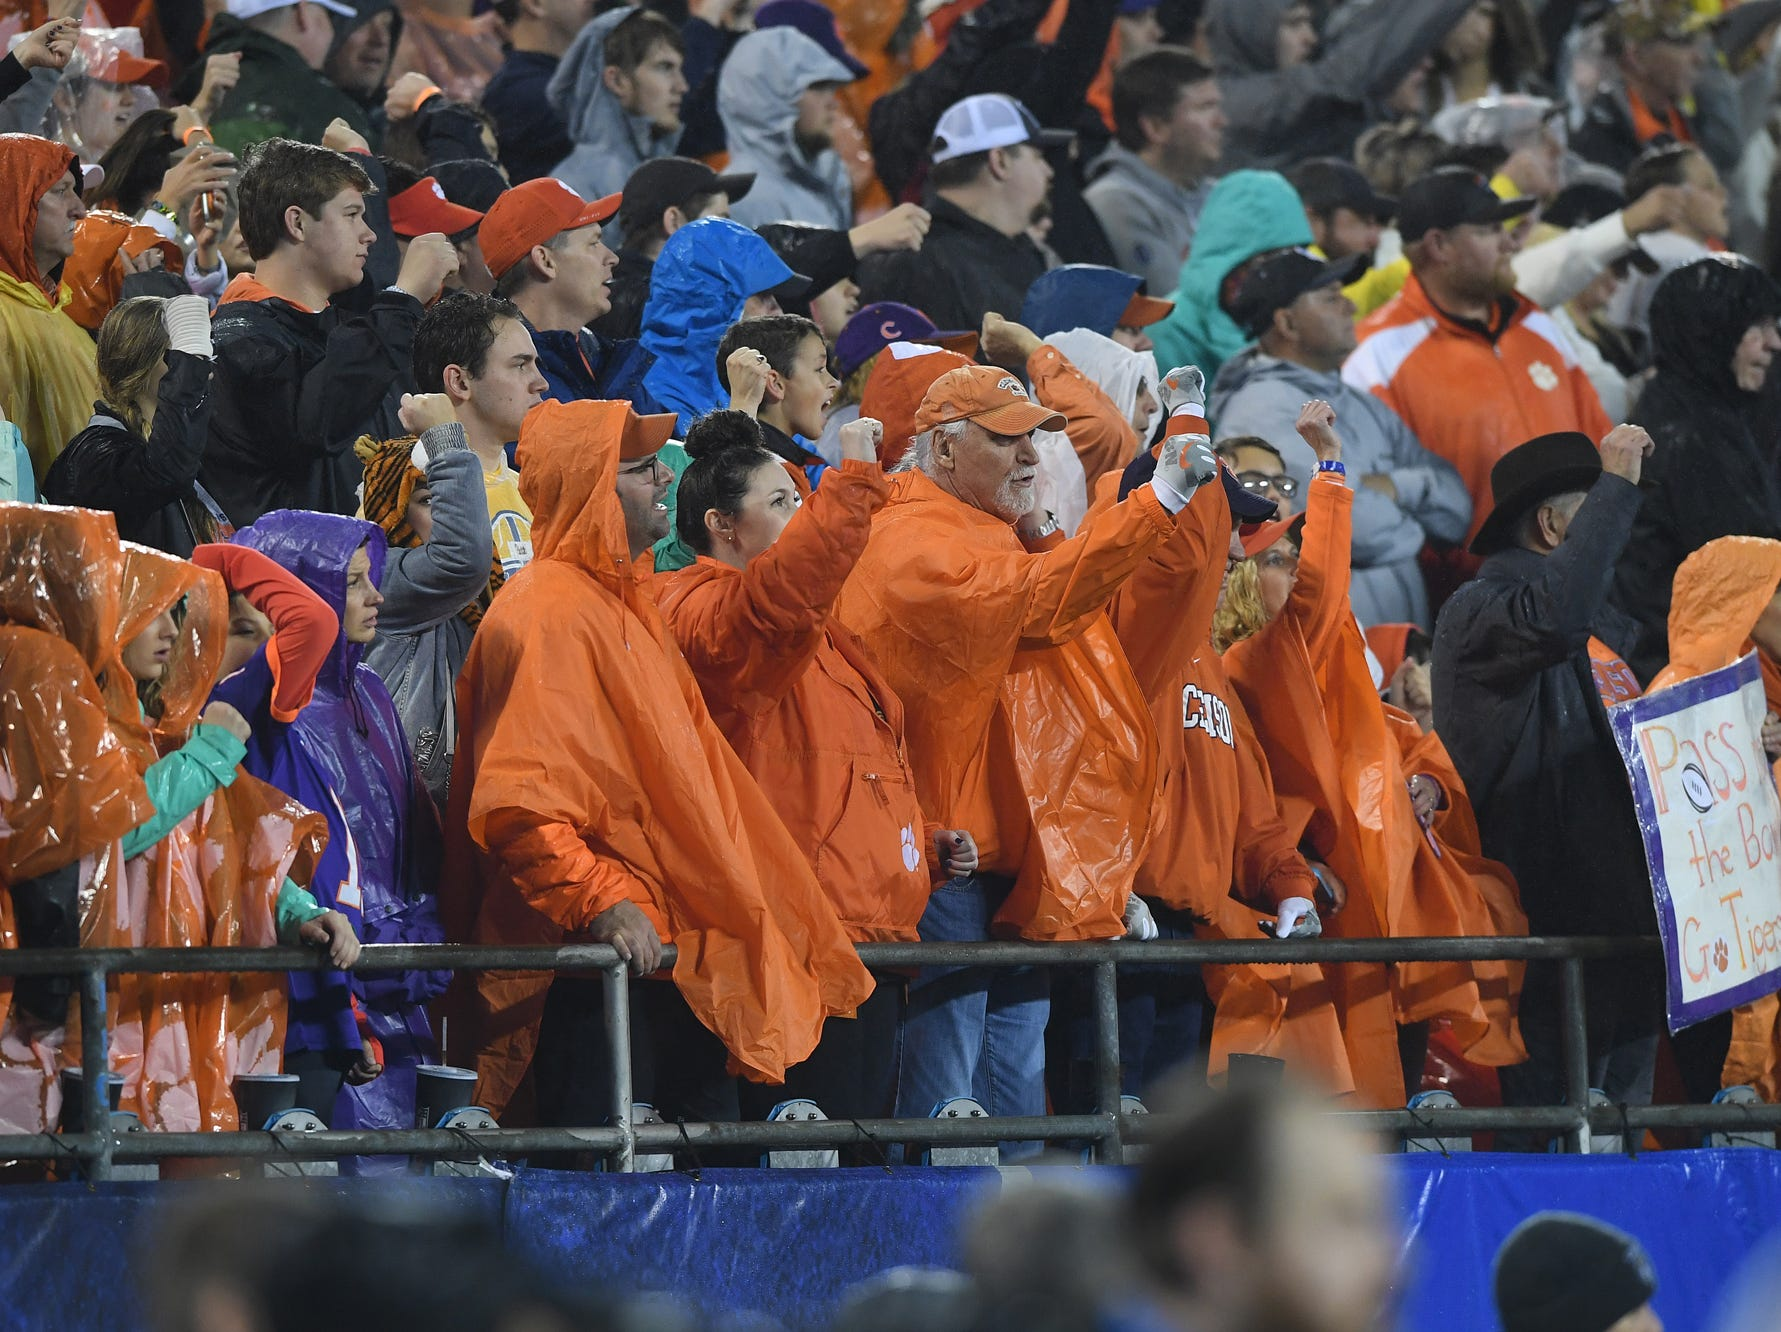 Clemson fans during the 1st quarter of the Dr. Pepper ACC Championship at Bank of America Stadium in Charlotte, N.C. Saturday, December 1, 2018.